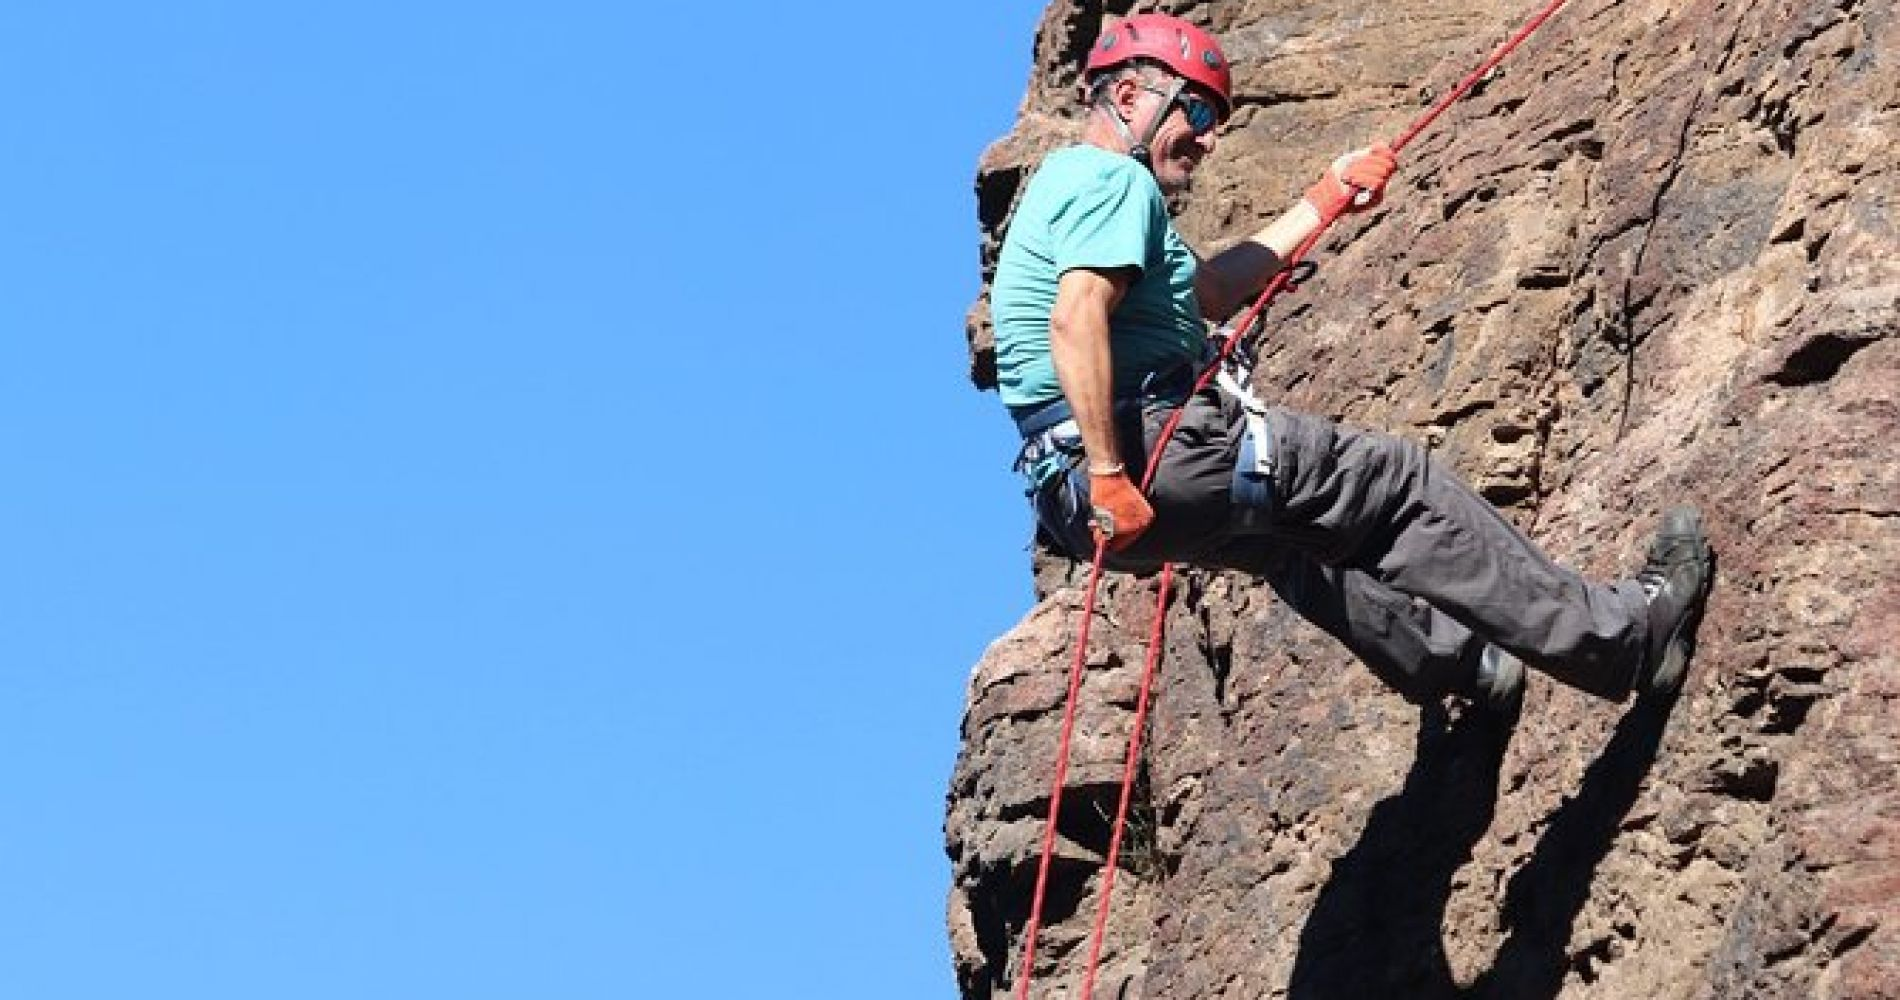 Half Day Rappel at Baja Mexico Mountains